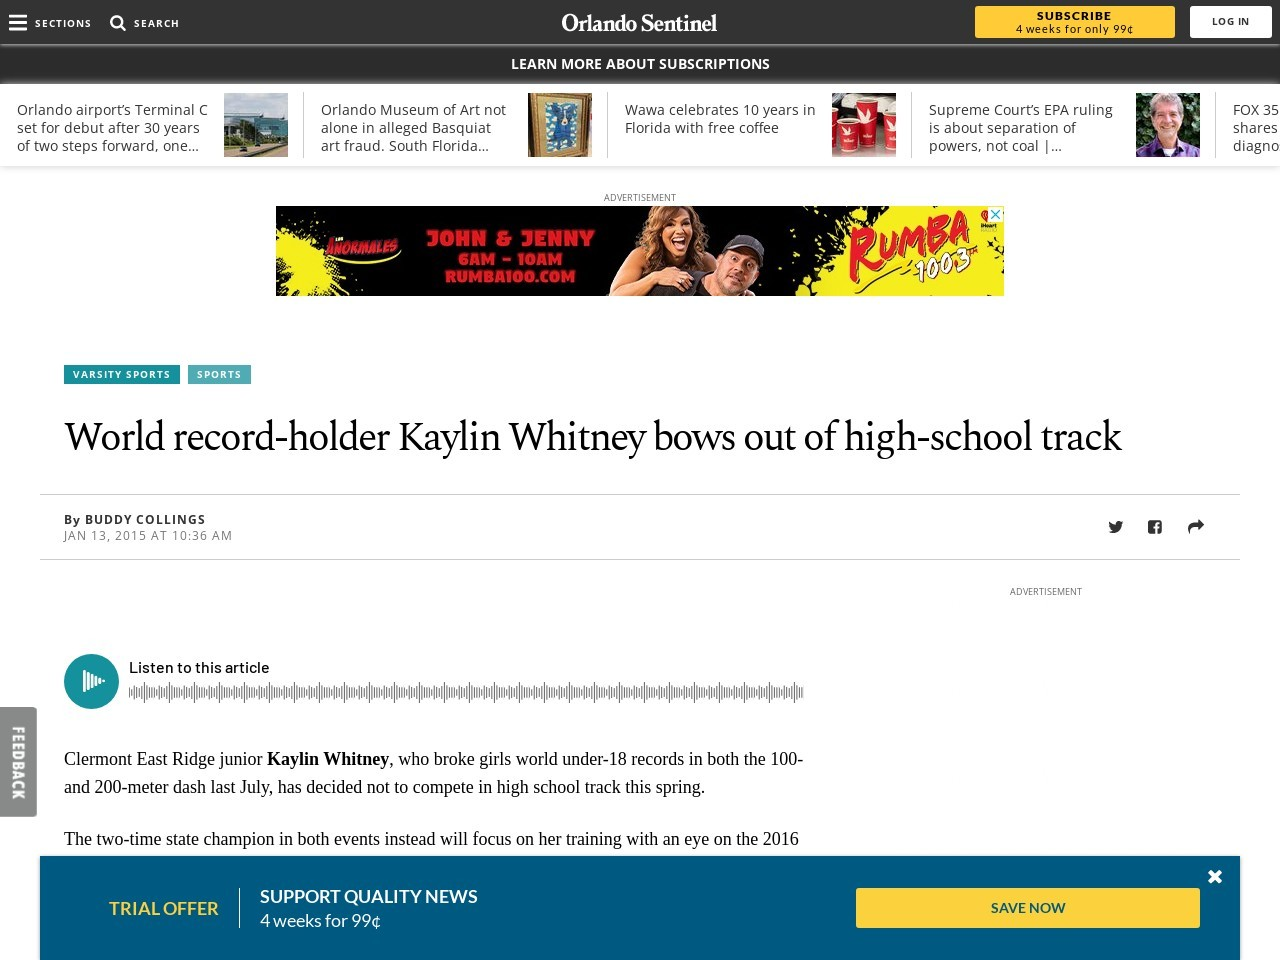 World record-holder Kaylin Whitney bows out of high-school track